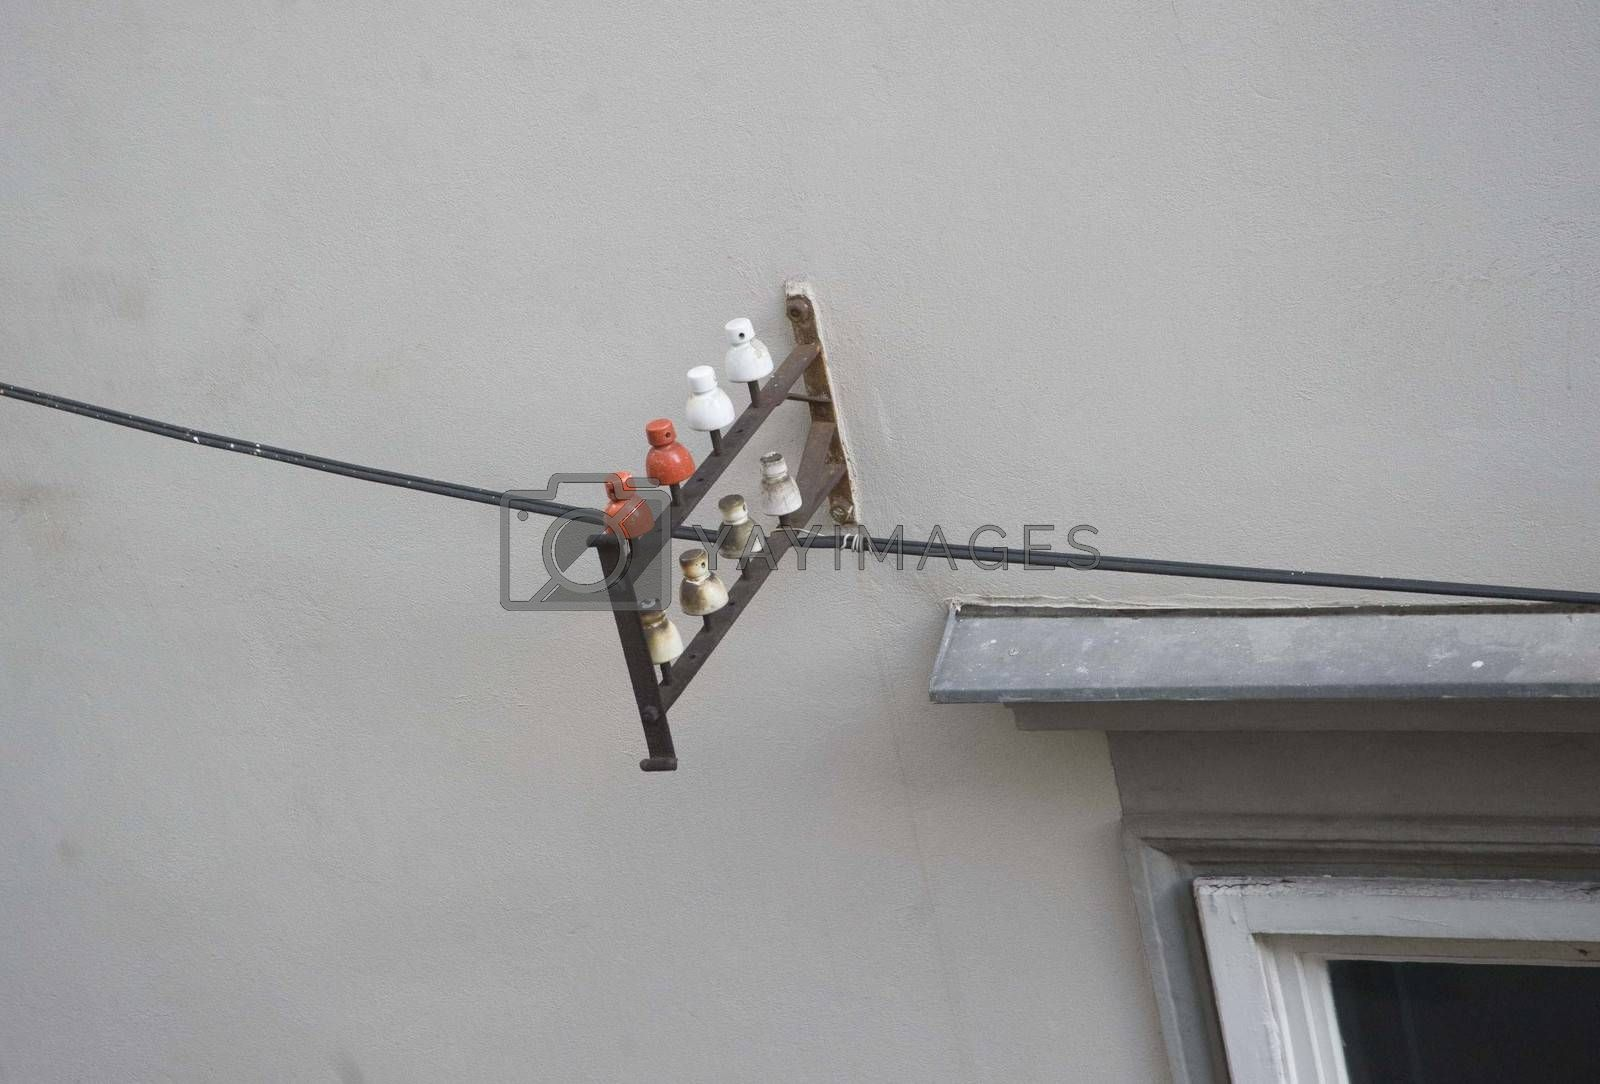 a ceramic insulator mounted on the wall of a building